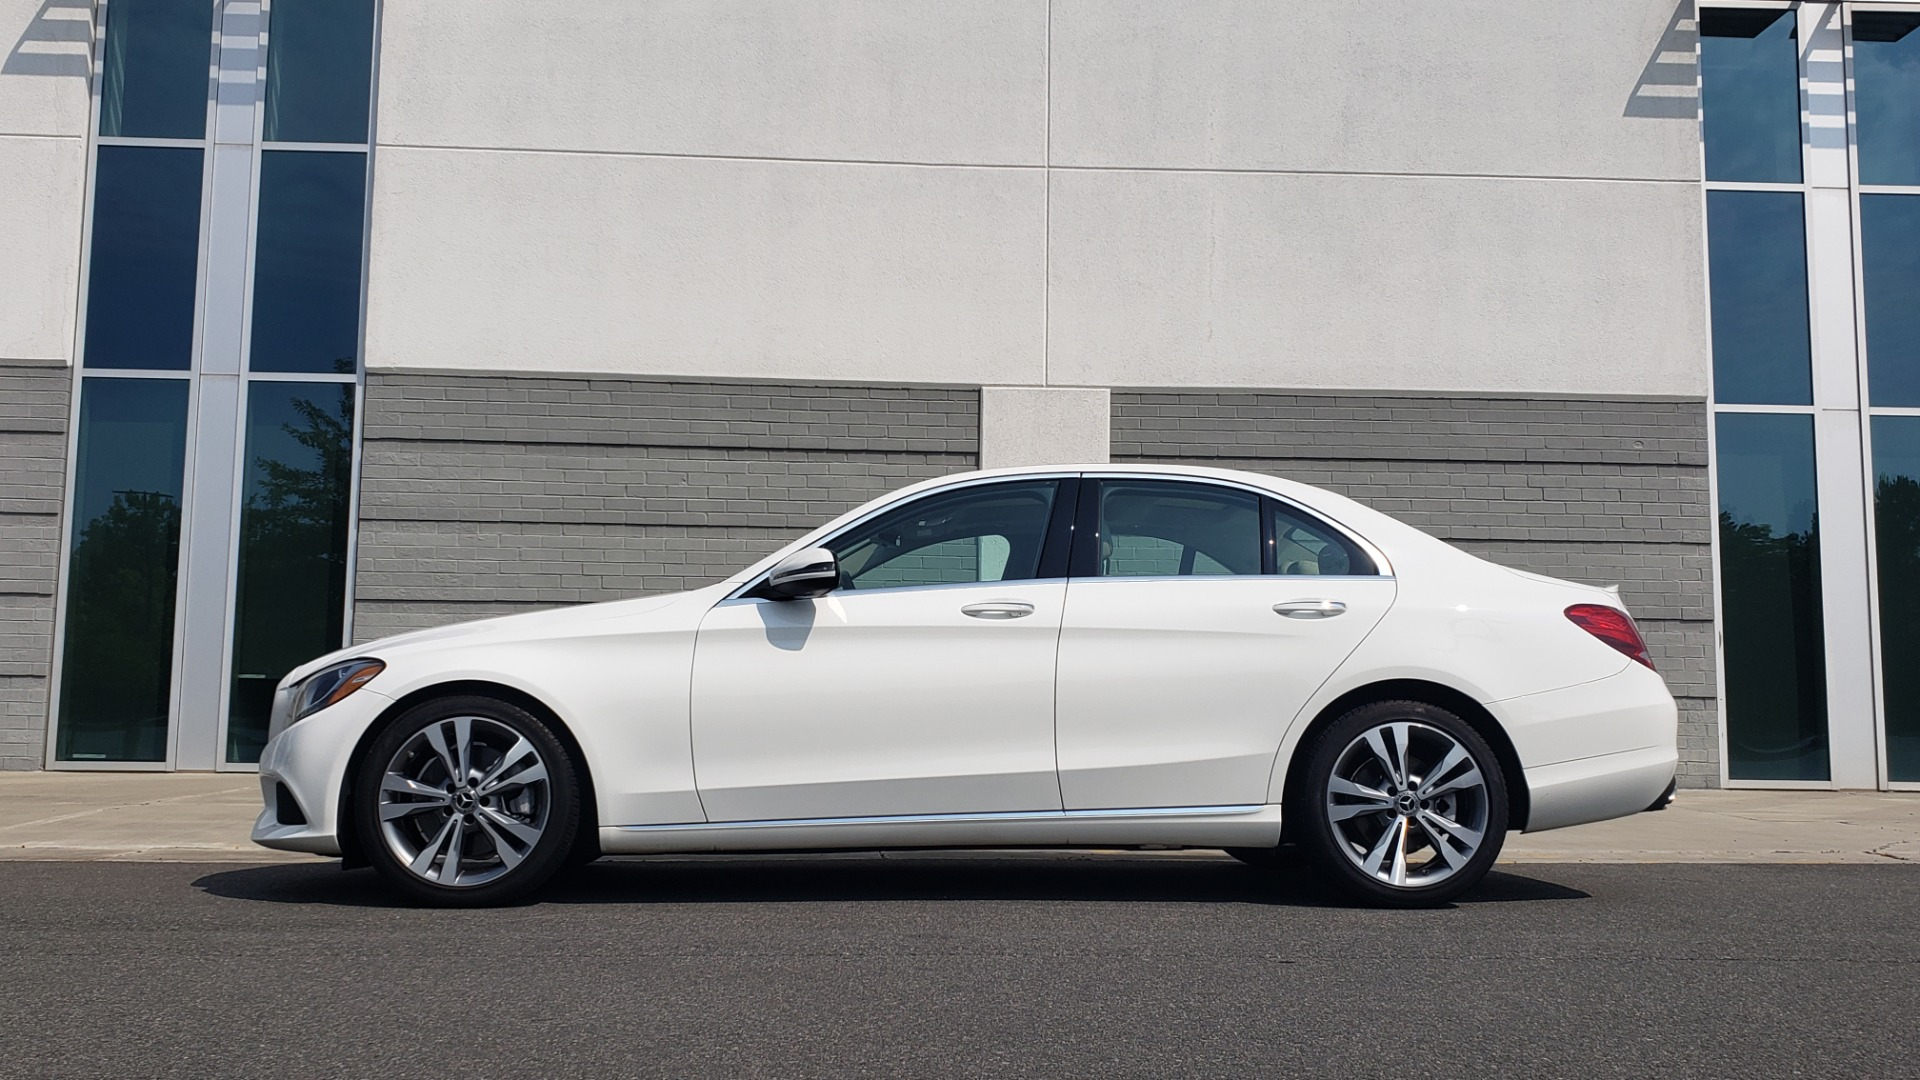 Used 2018 Mercedes-Benz C-CLASS C 300 PREMIUM / KEYLESS-GO / APPLE / PANO-ROOF / REARVIEW for sale $28,295 at Formula Imports in Charlotte NC 28227 5